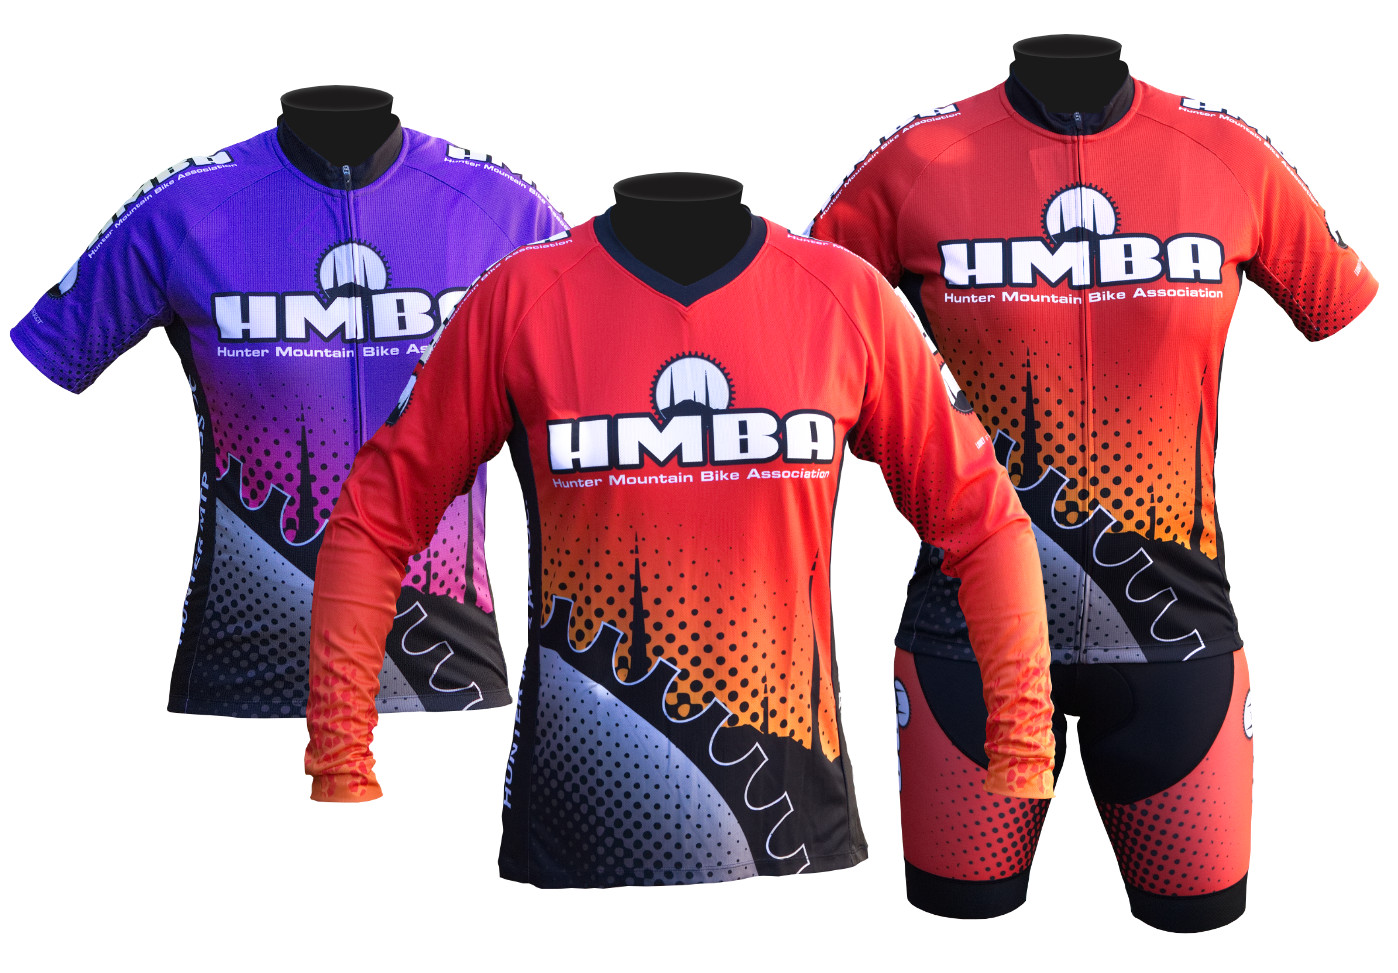 hunter mountain bike association custom jersey